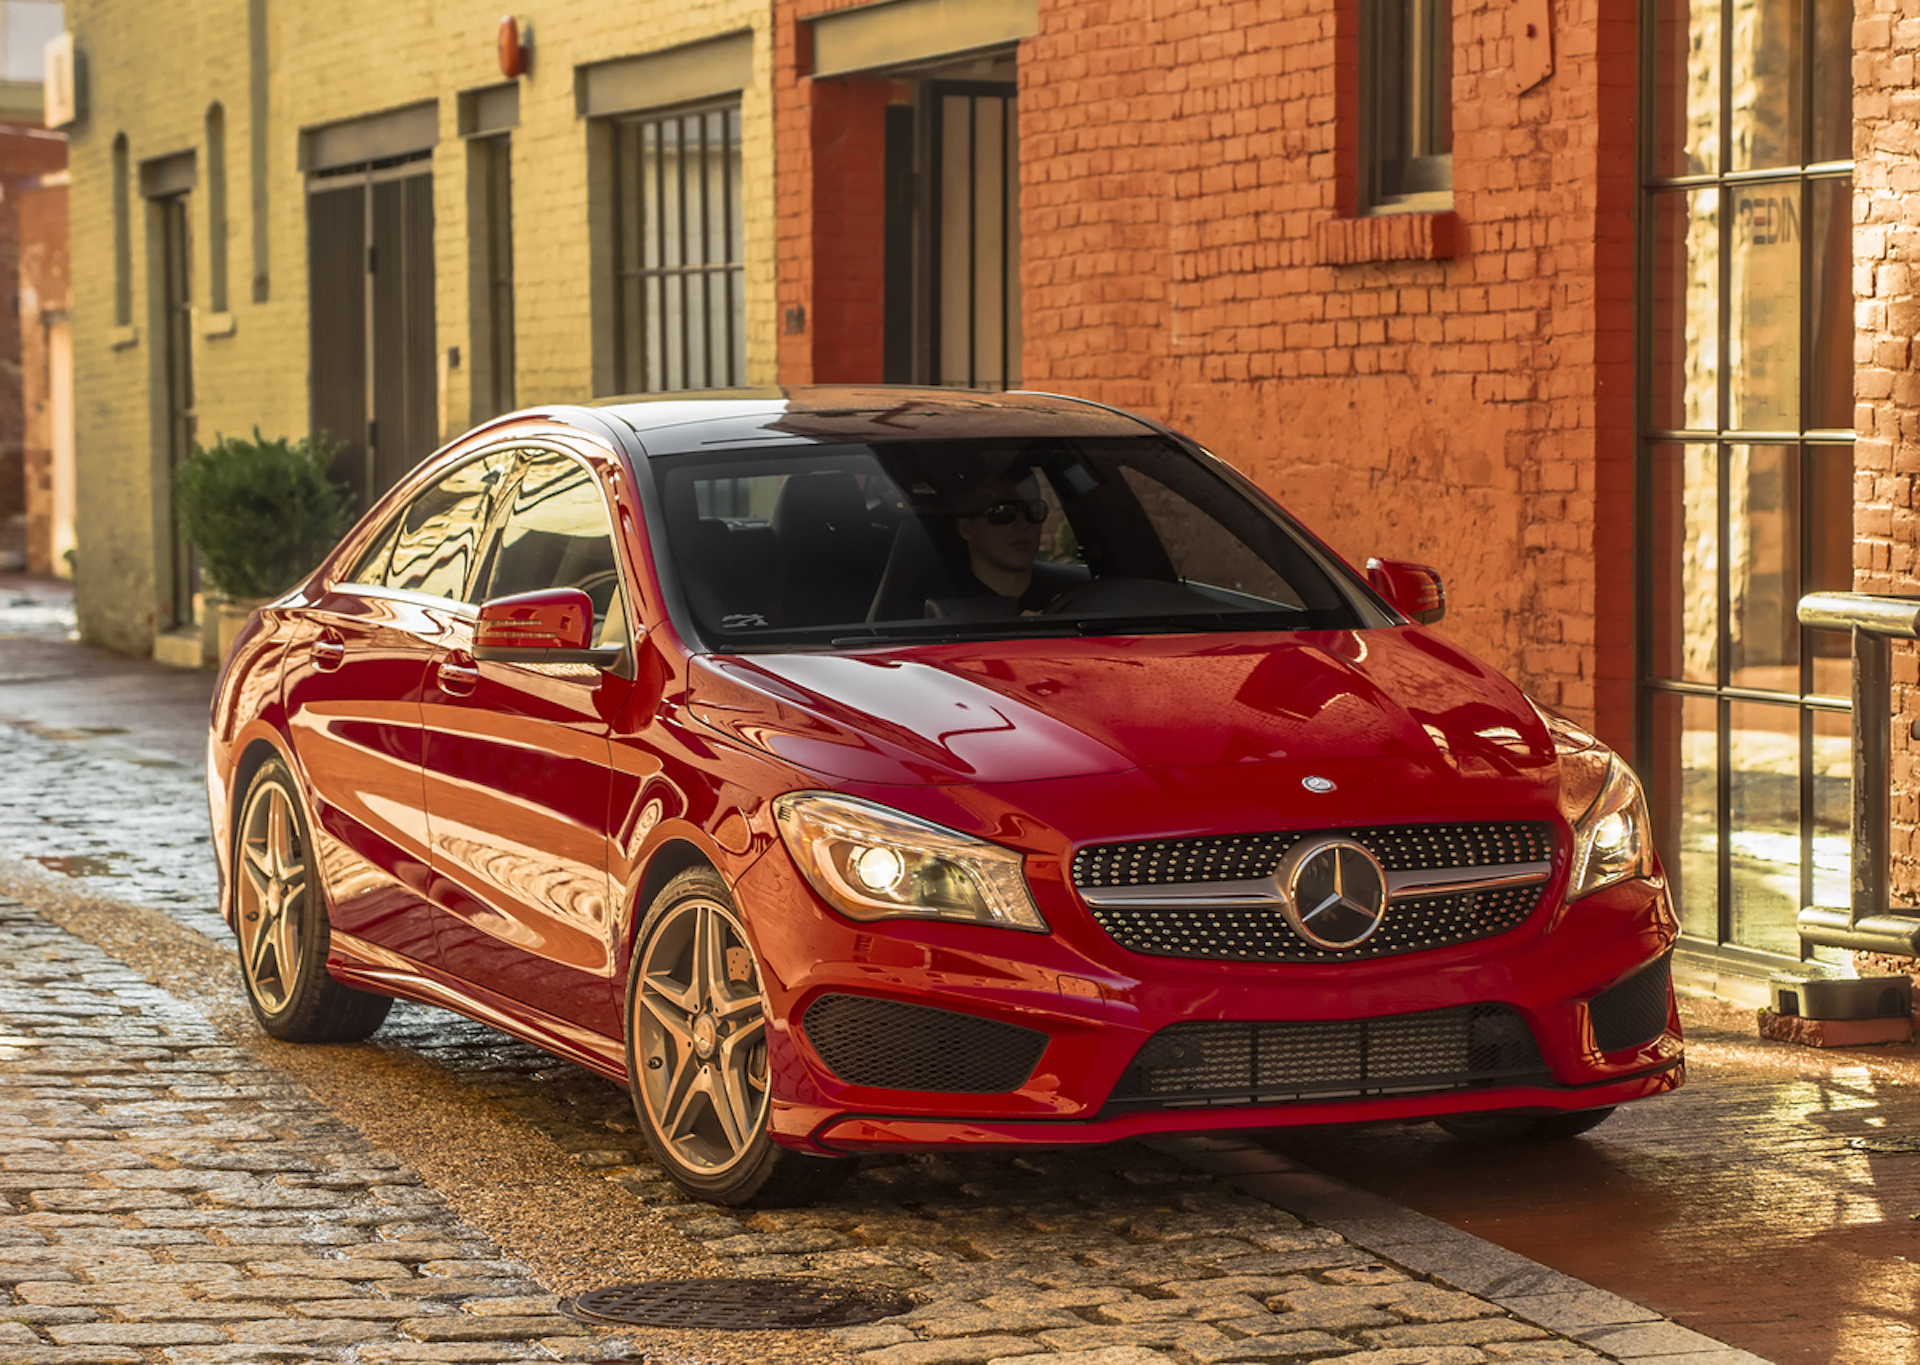 Mercedes Benz Cla Class Starting Price Rises To 32 425